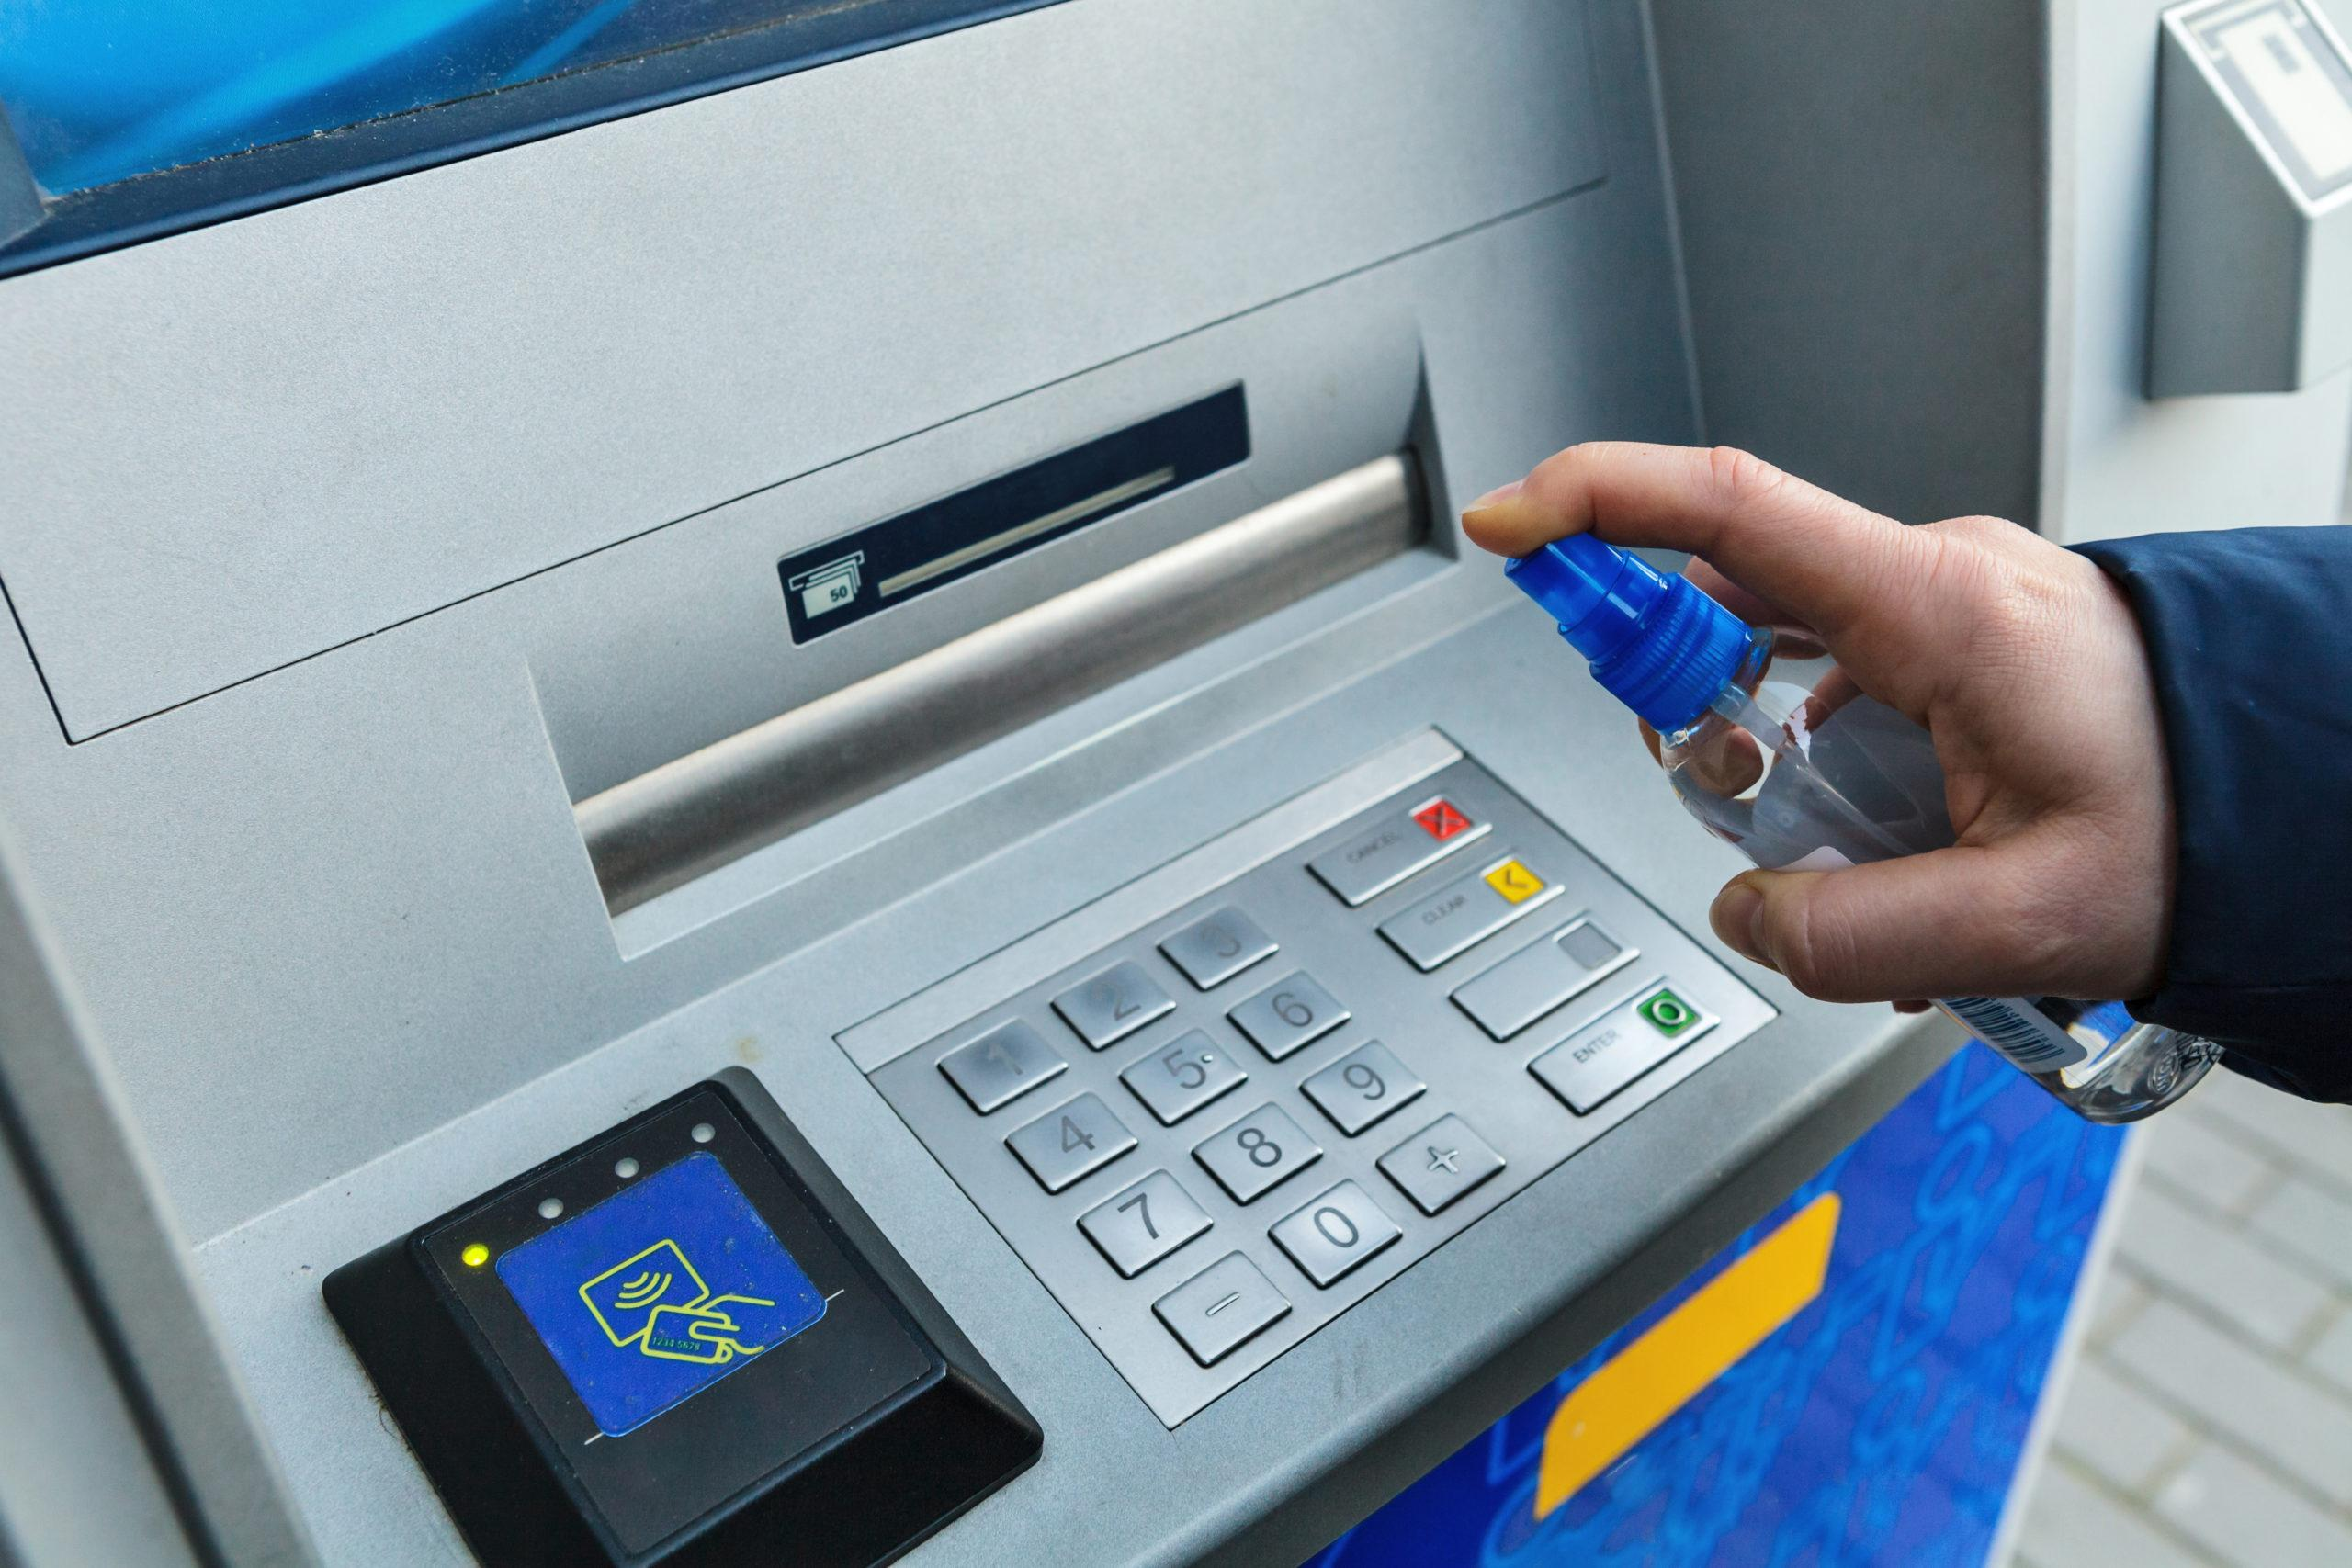 Safety measures in Baku: Disinfectors installed in ATM's